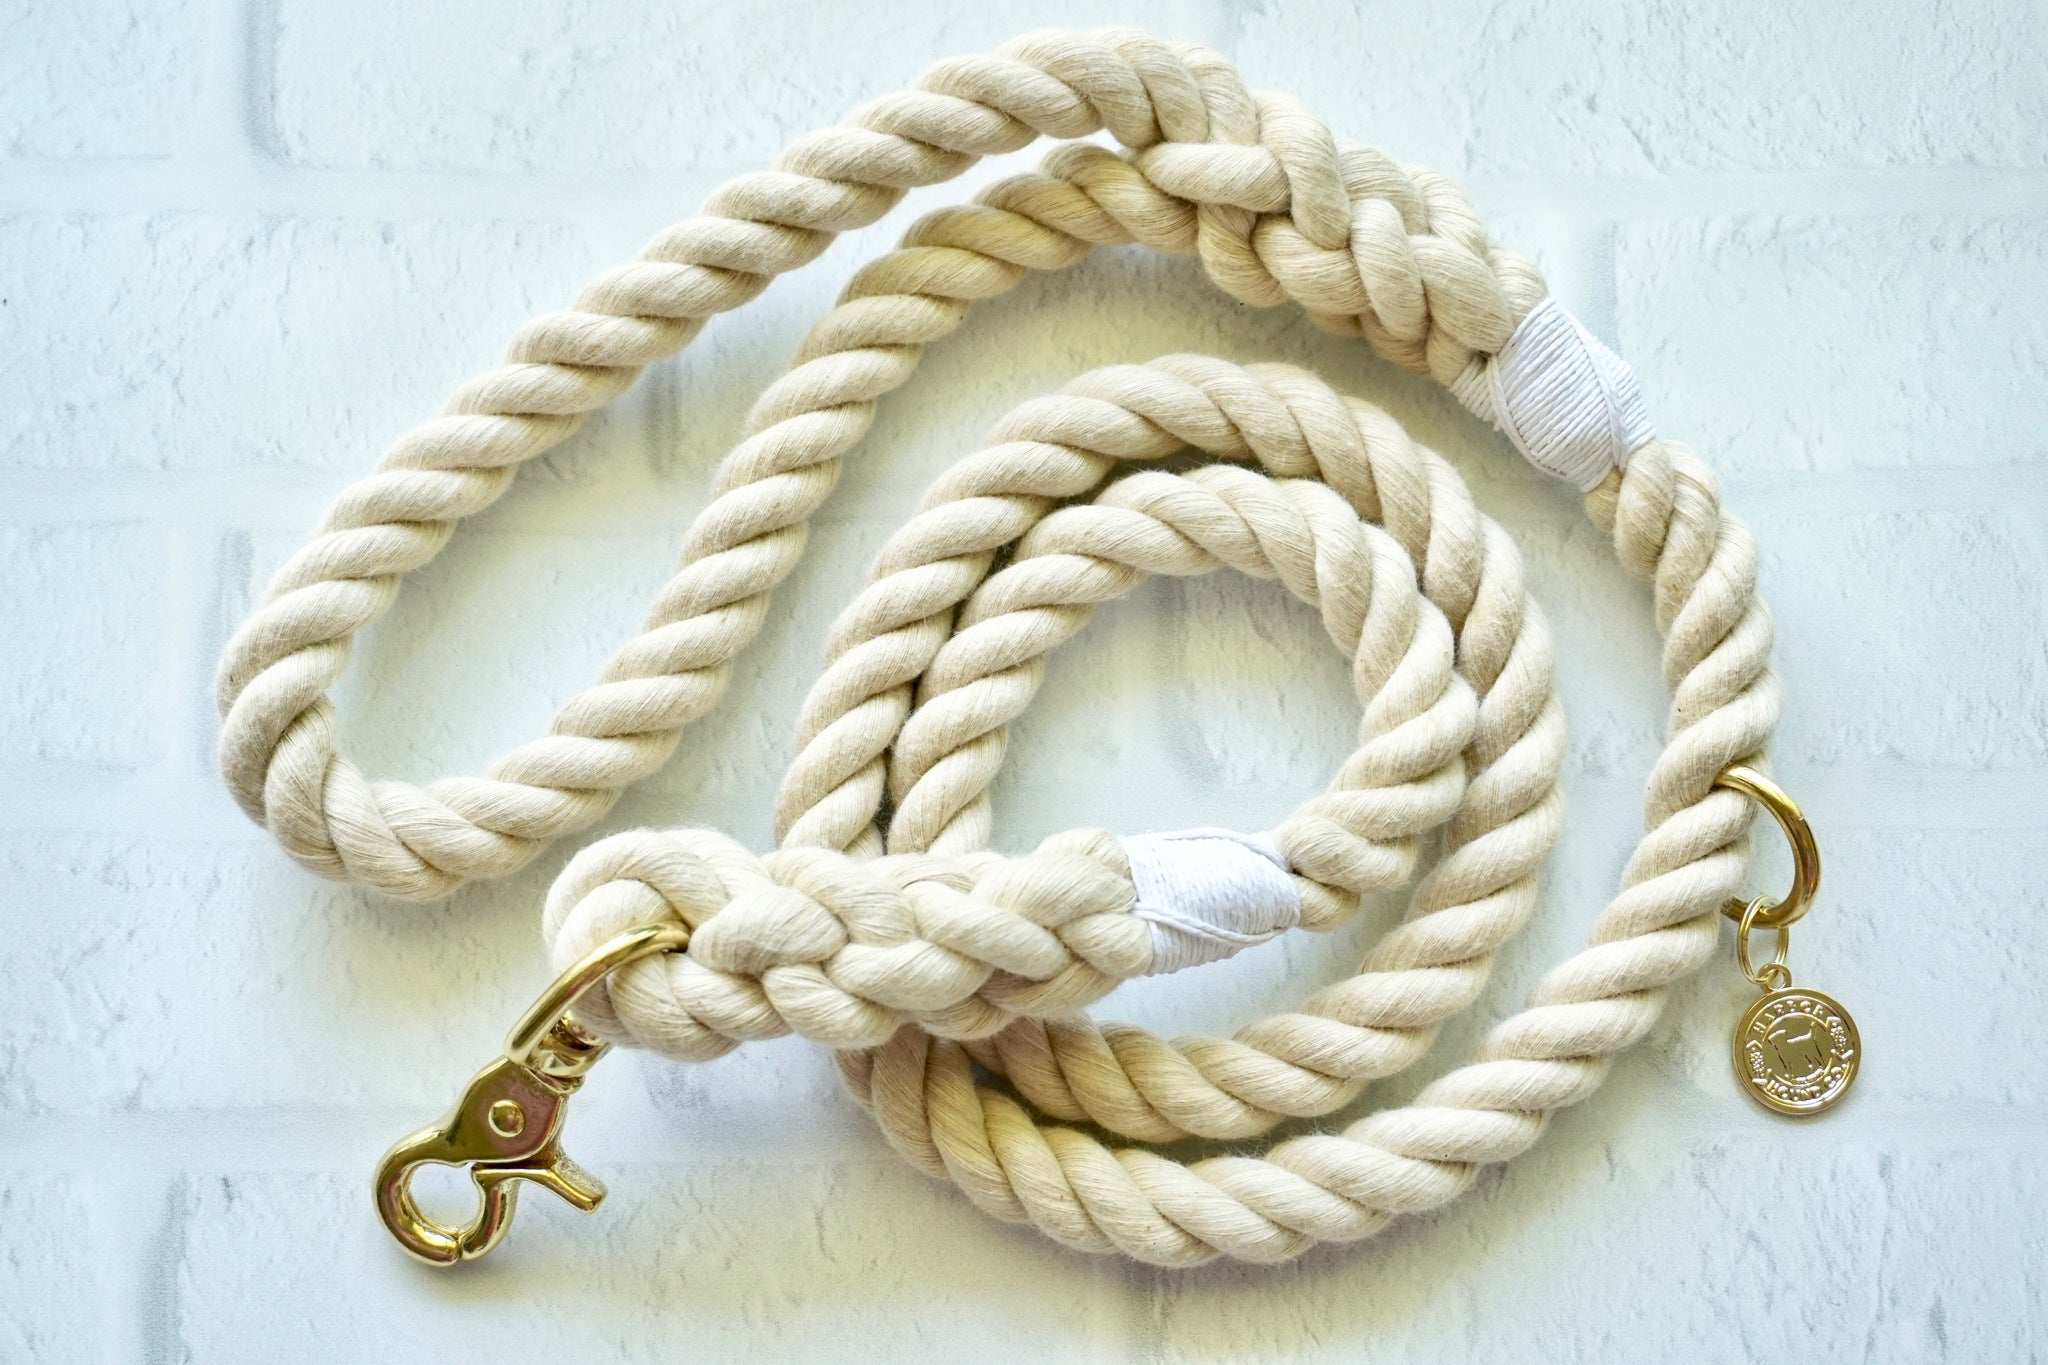 Shark Tooth Khaki Cotton Rope Dog Leash